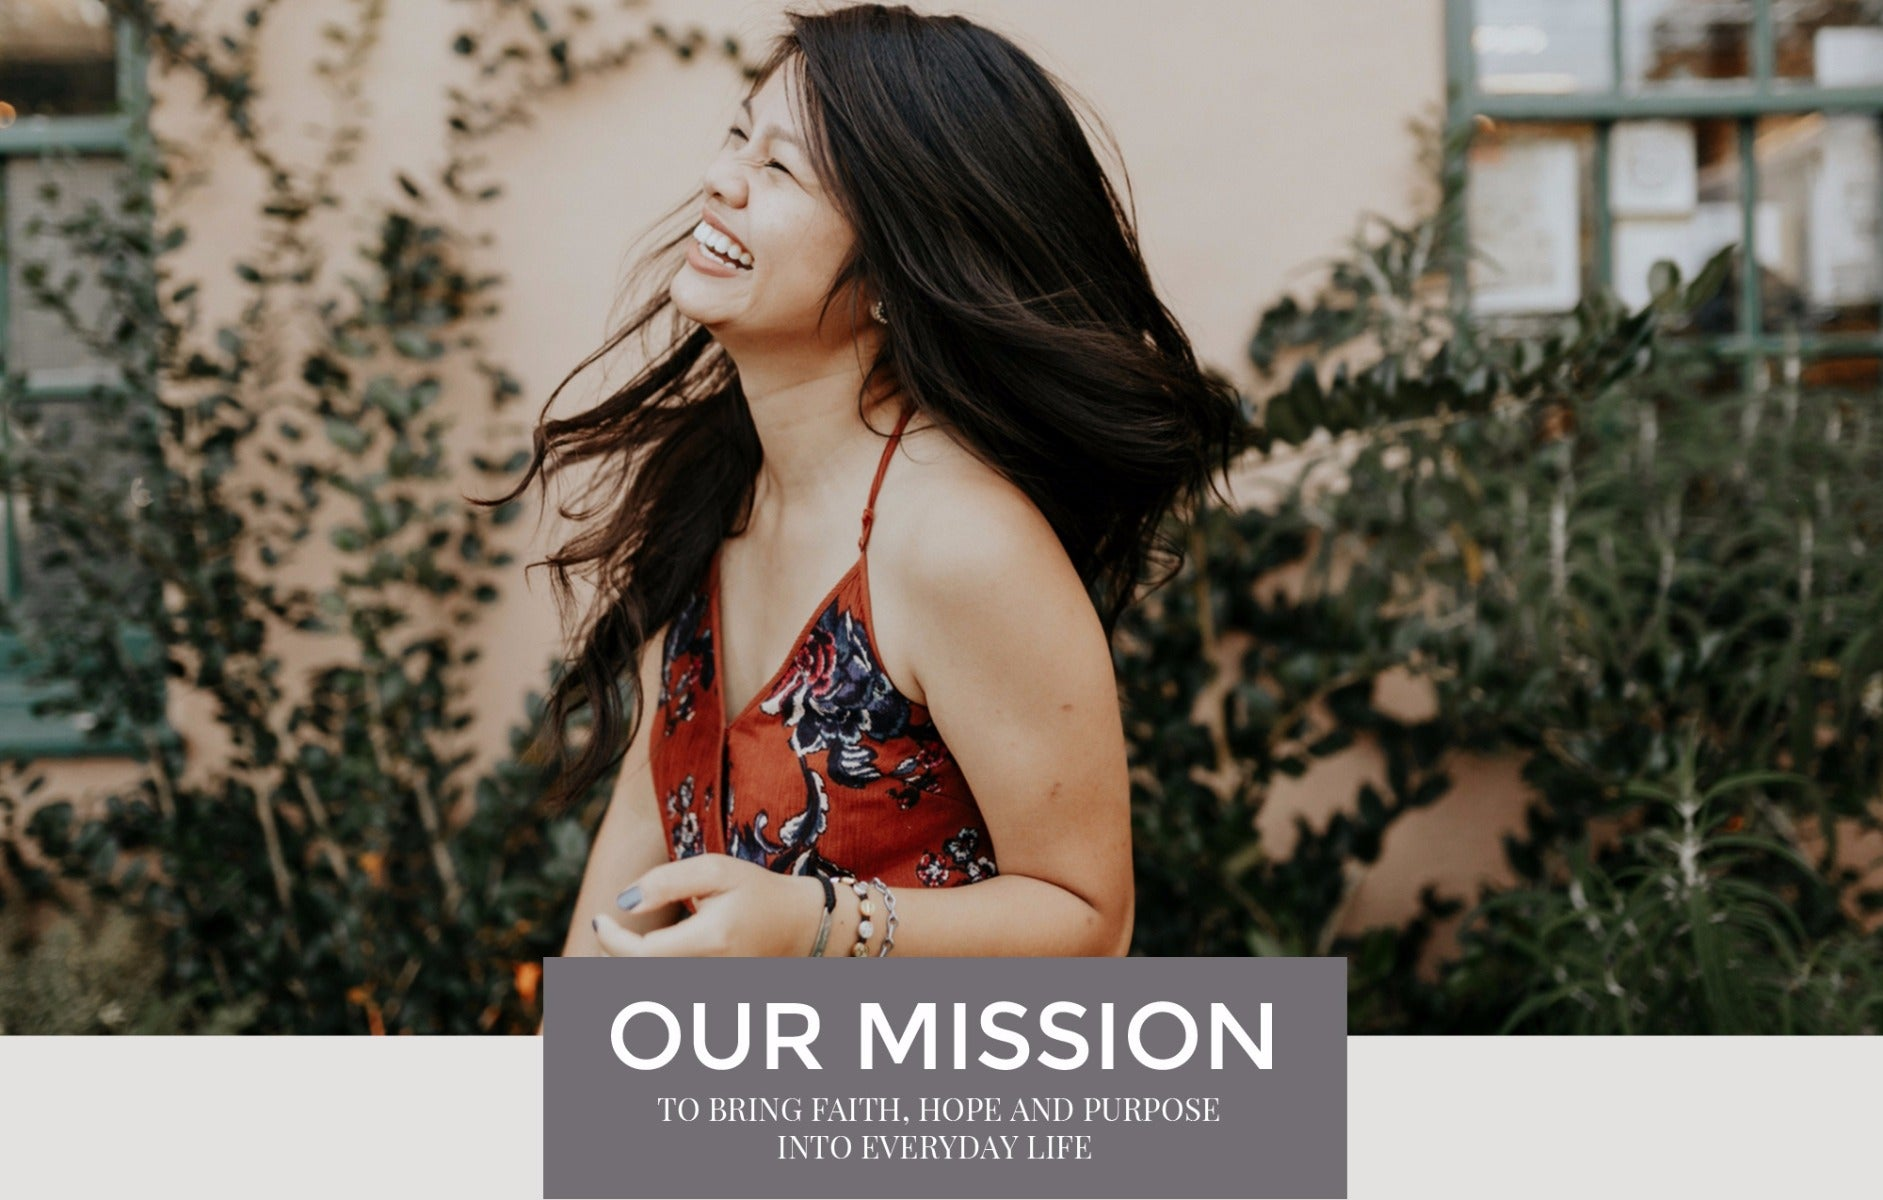 OUR MISSION - To bring faith, hope, and purpose into everyday life - young woman laughing as her long brown hair swings